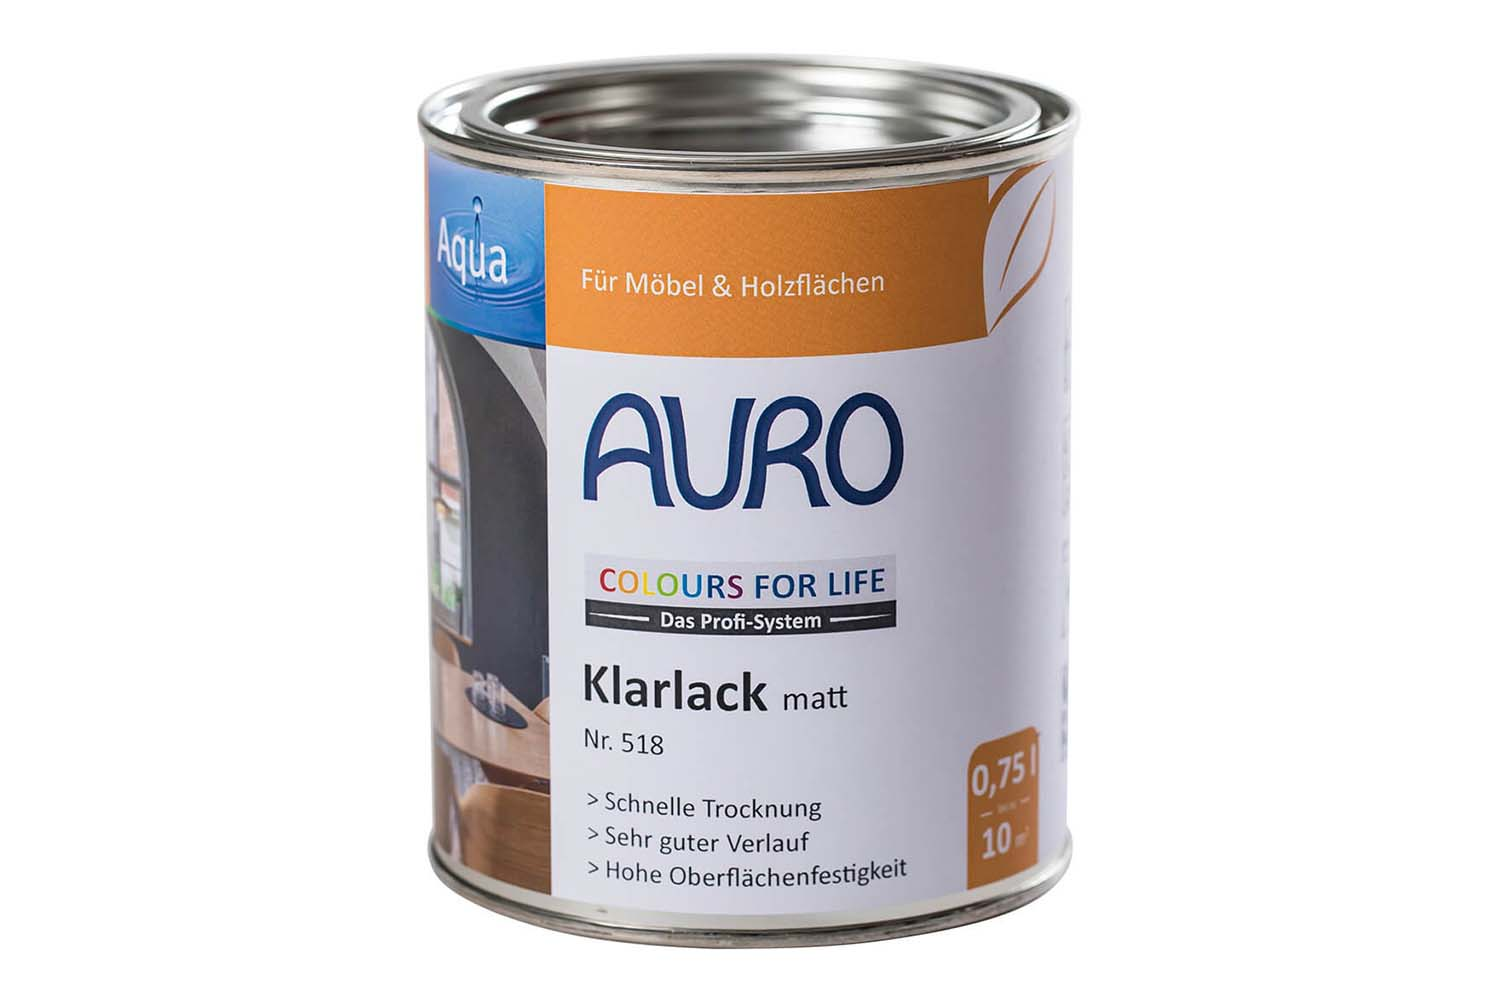 Auro Klarlack matt Nr. 518 Colours for Life